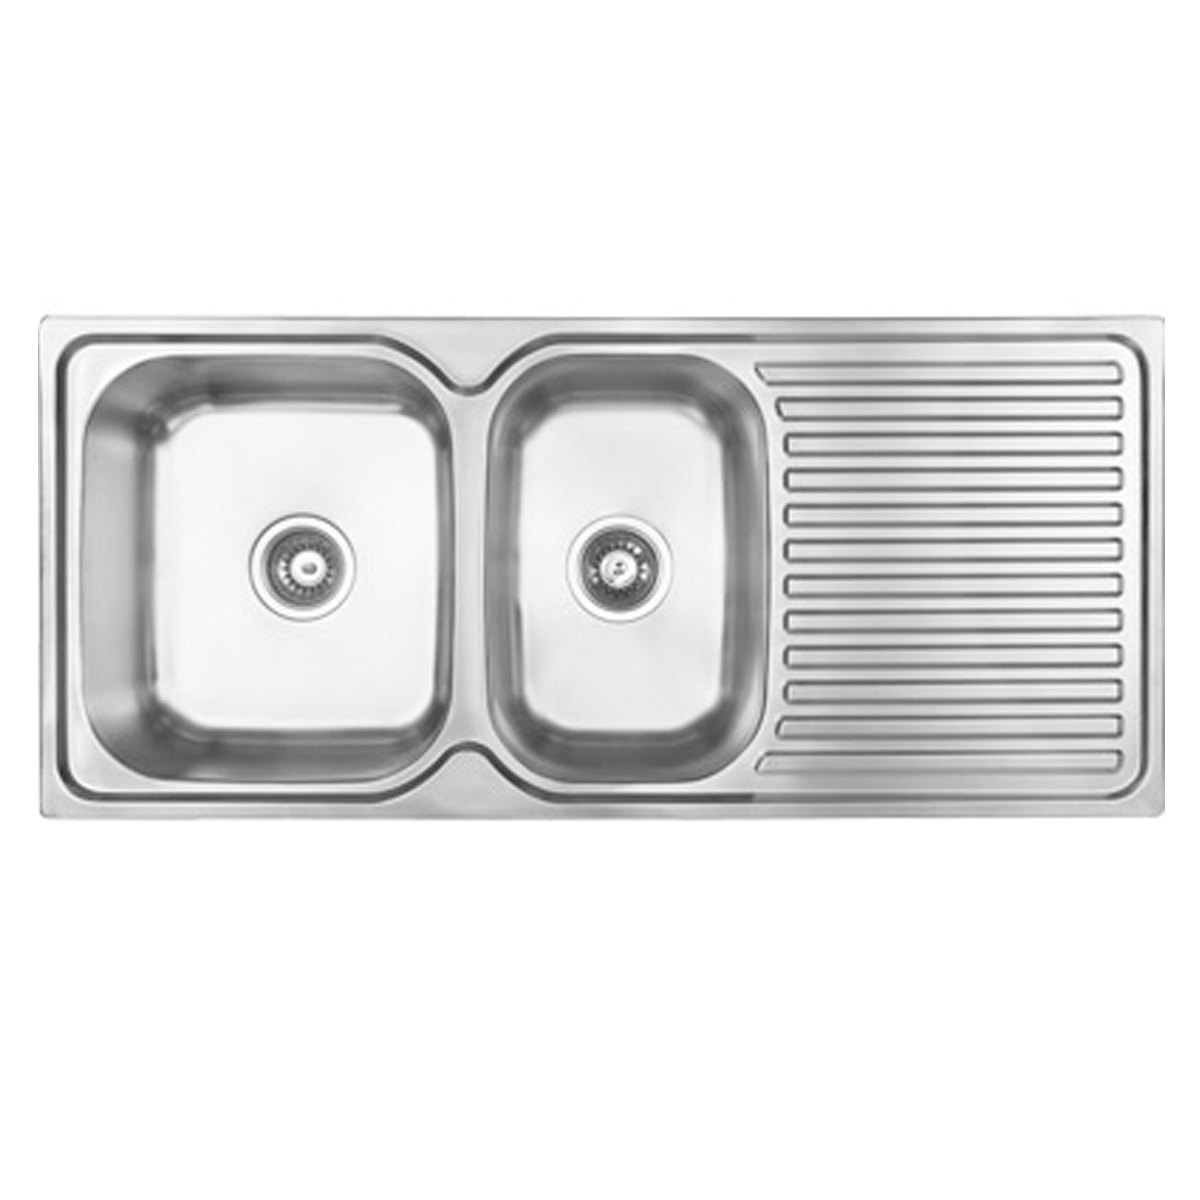 Abey PR180R 18/10 Stainless Steel Kitchen Sink